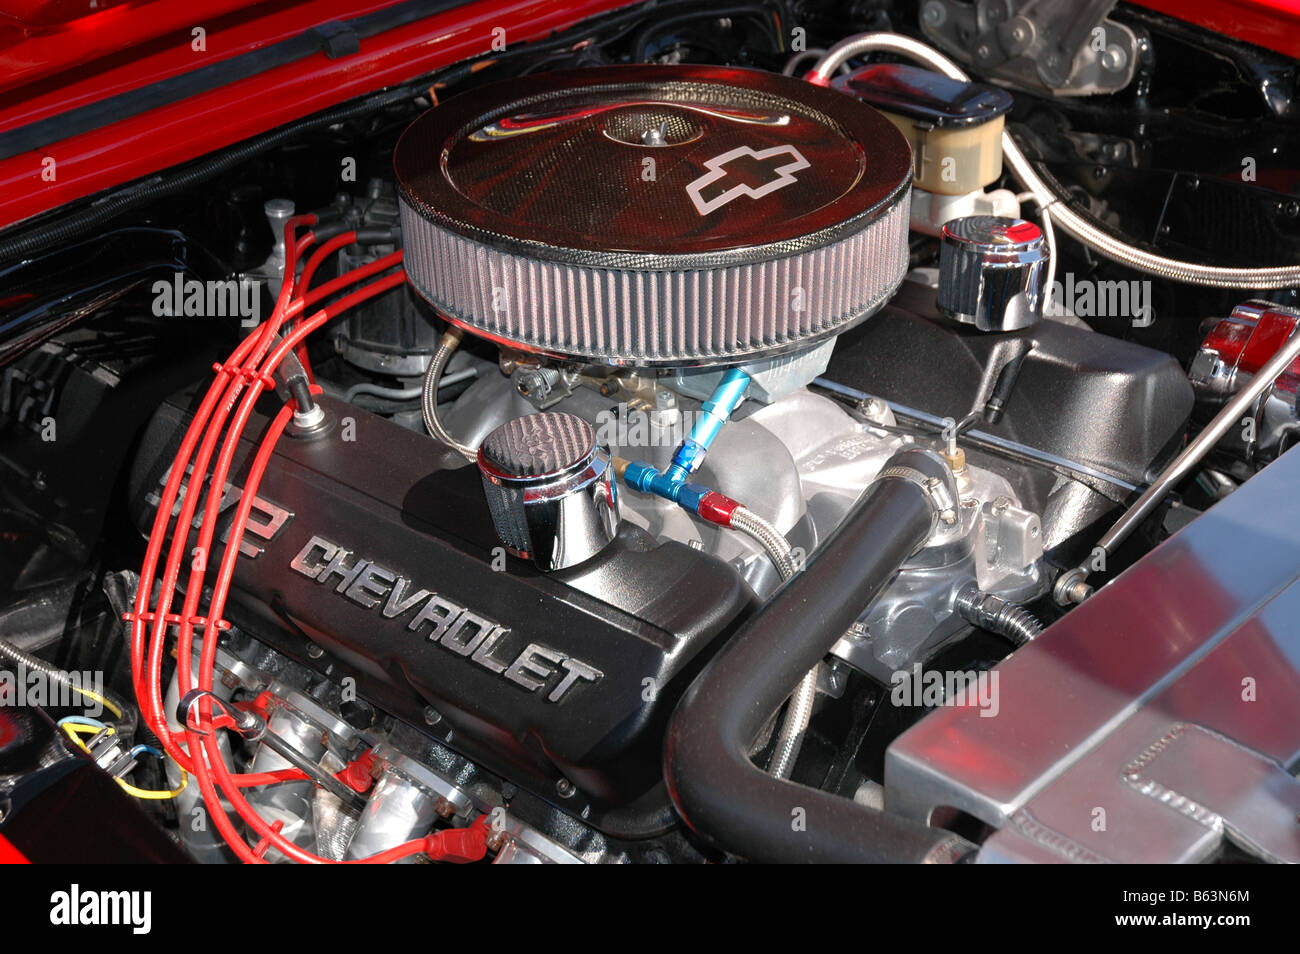 572 Big Block Chevy Engine